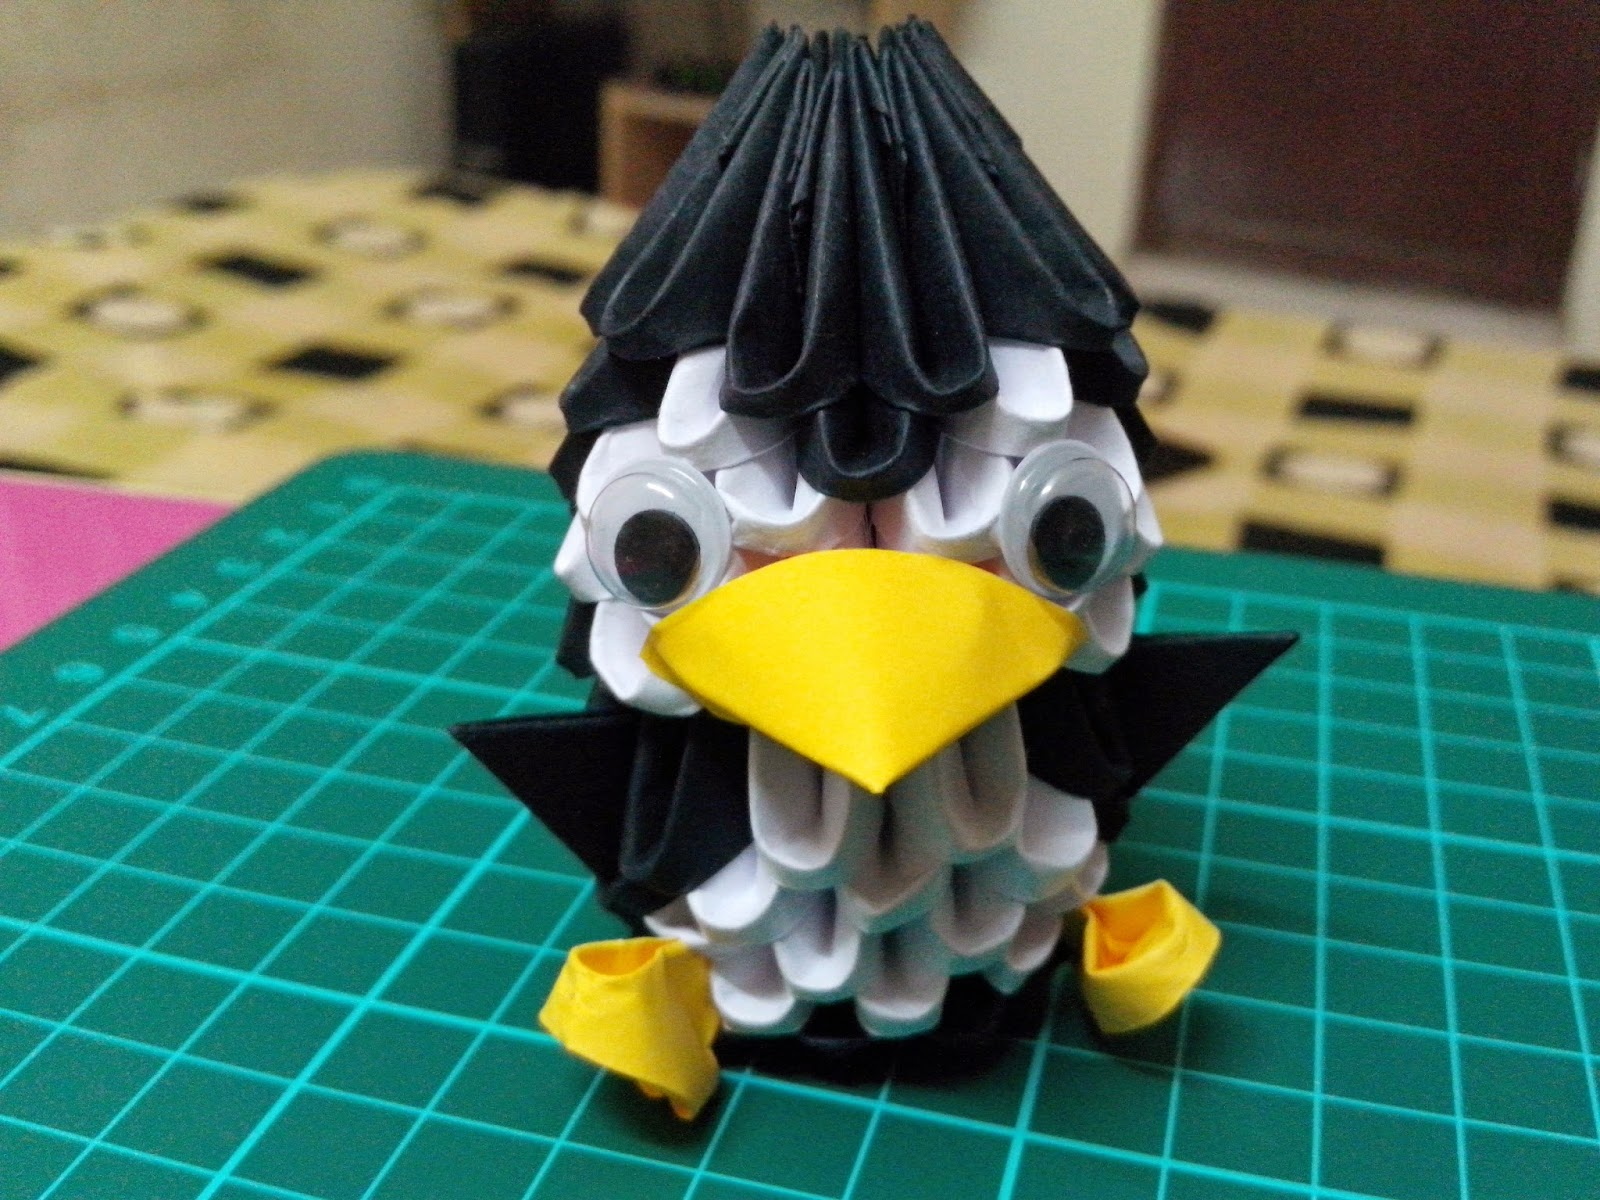 Here Are Some Other Very Lil And Super Cute 3d Penguin Chick Small Dragon Boat I Used Google Eyes Paper Beak Feet For The Same